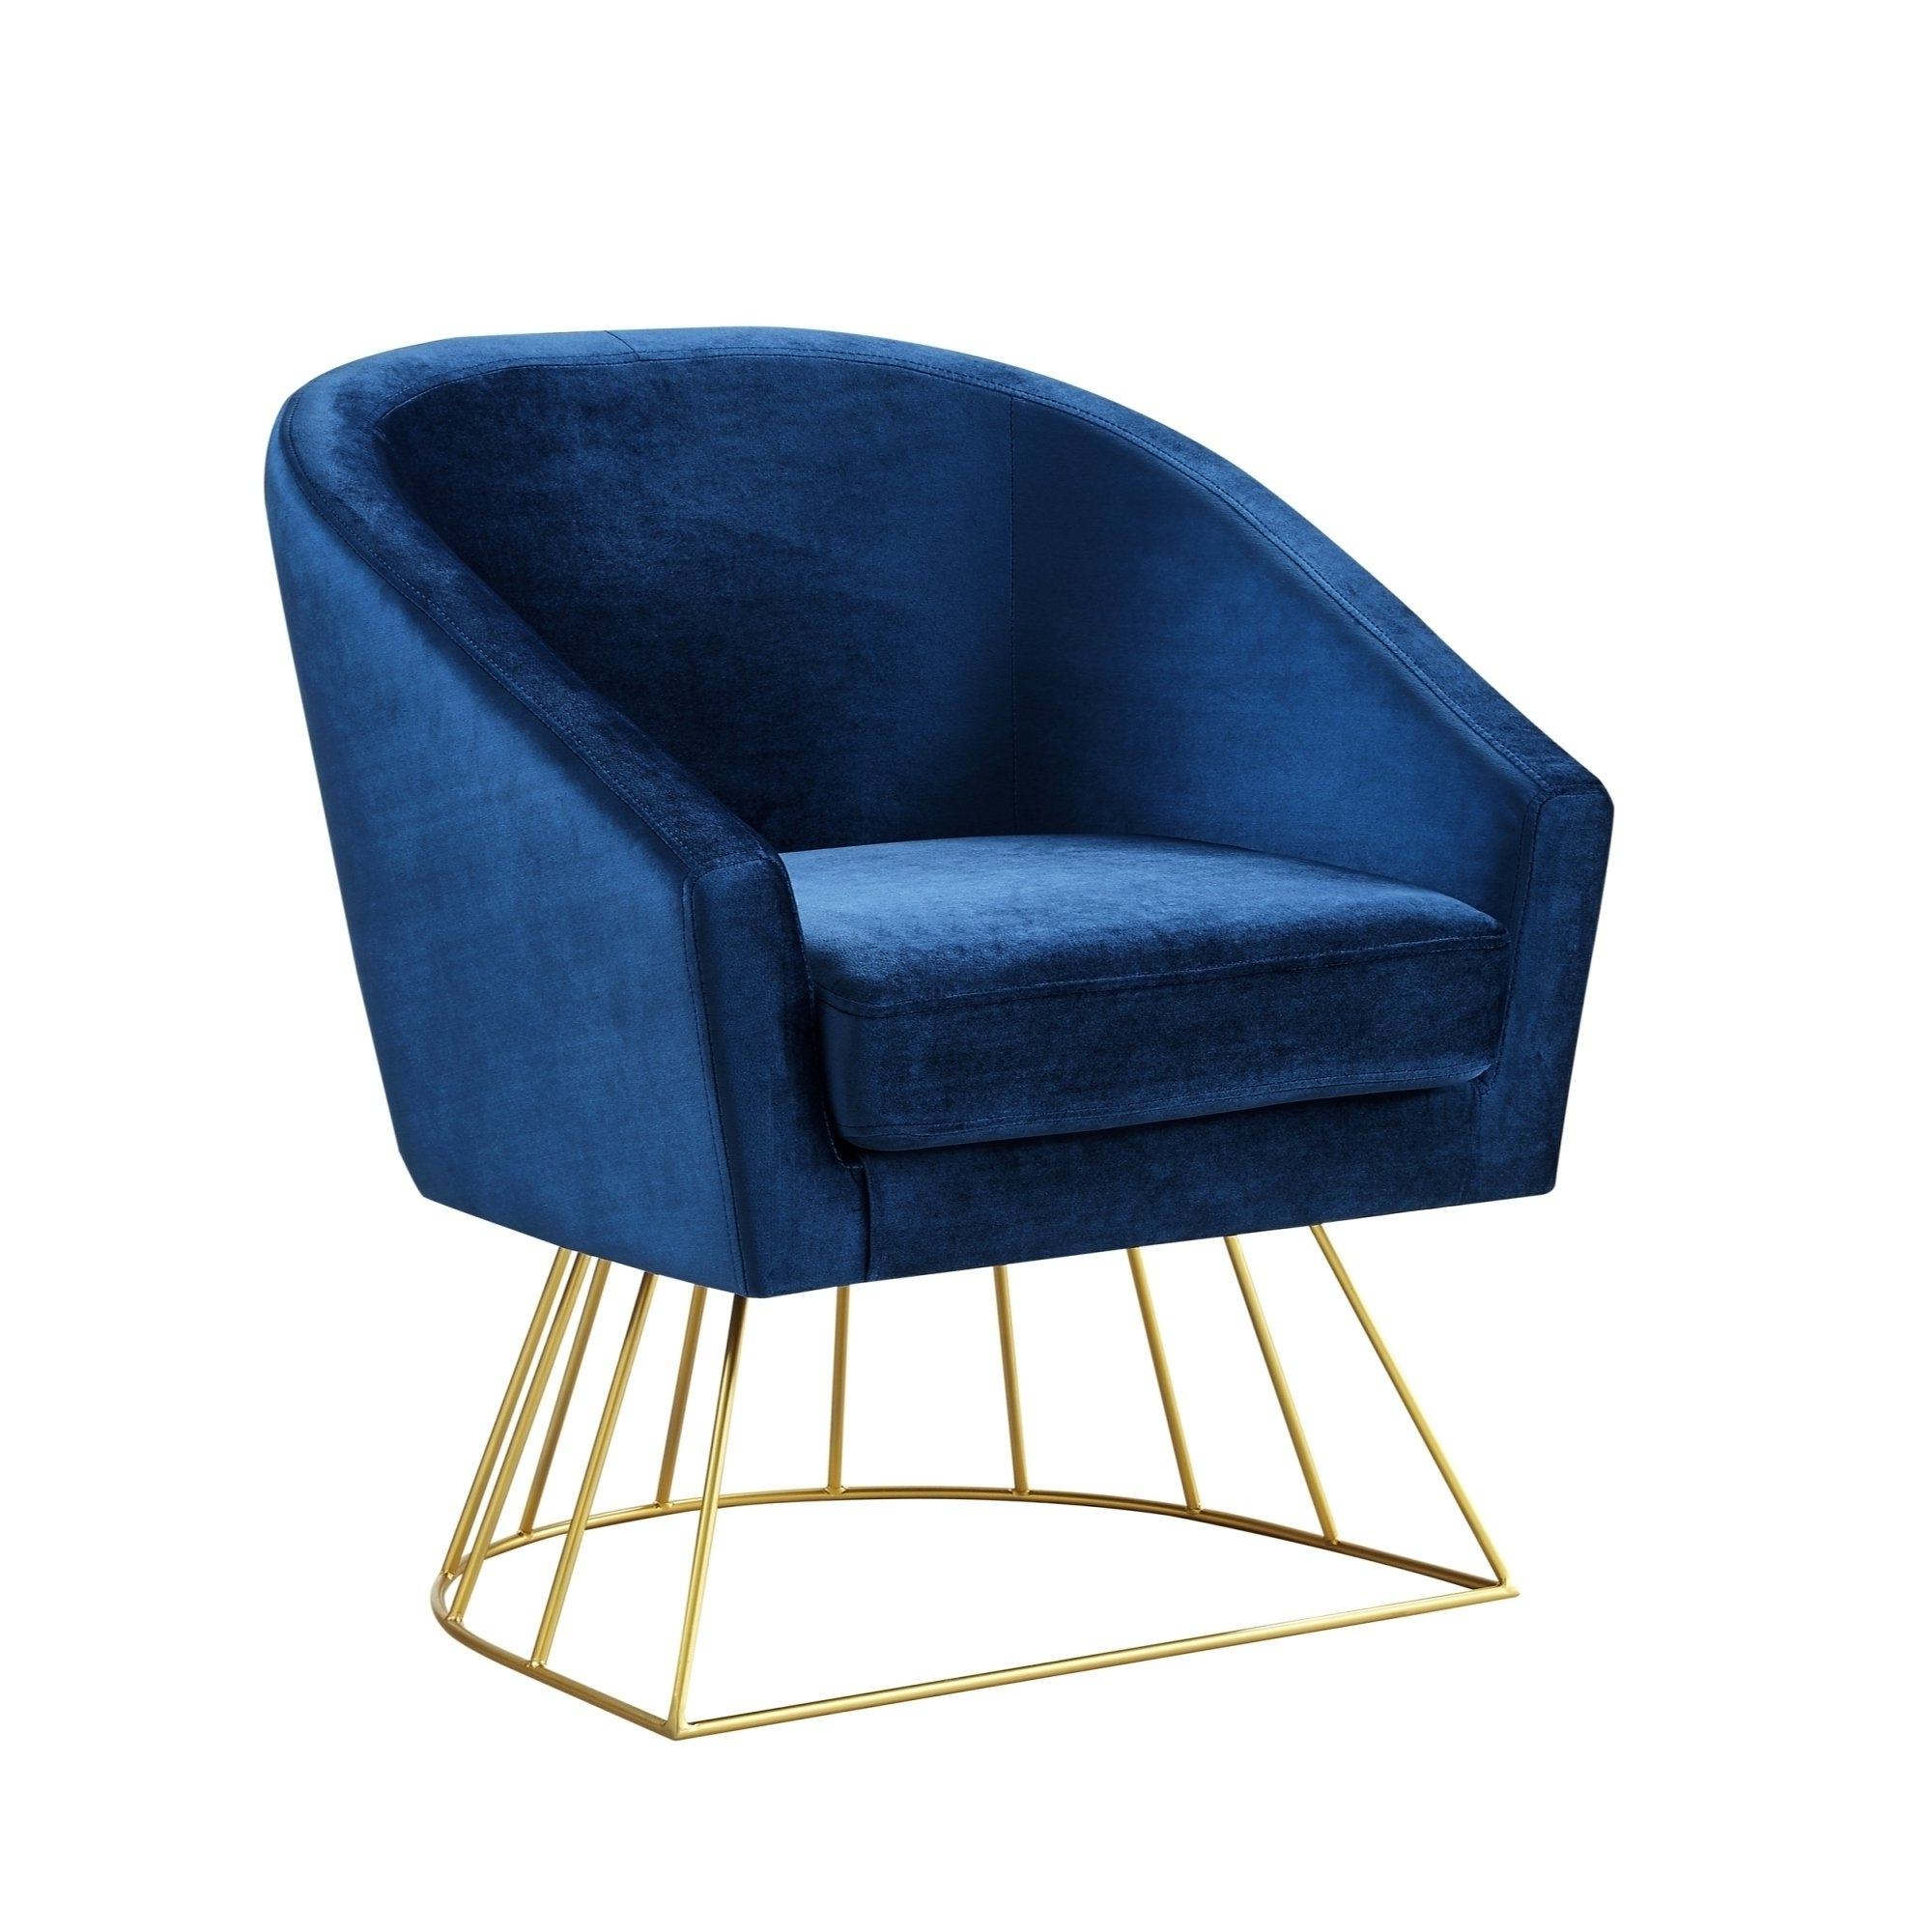 Buy Living Room Chairs Online At Overstock (View 17 of 20)